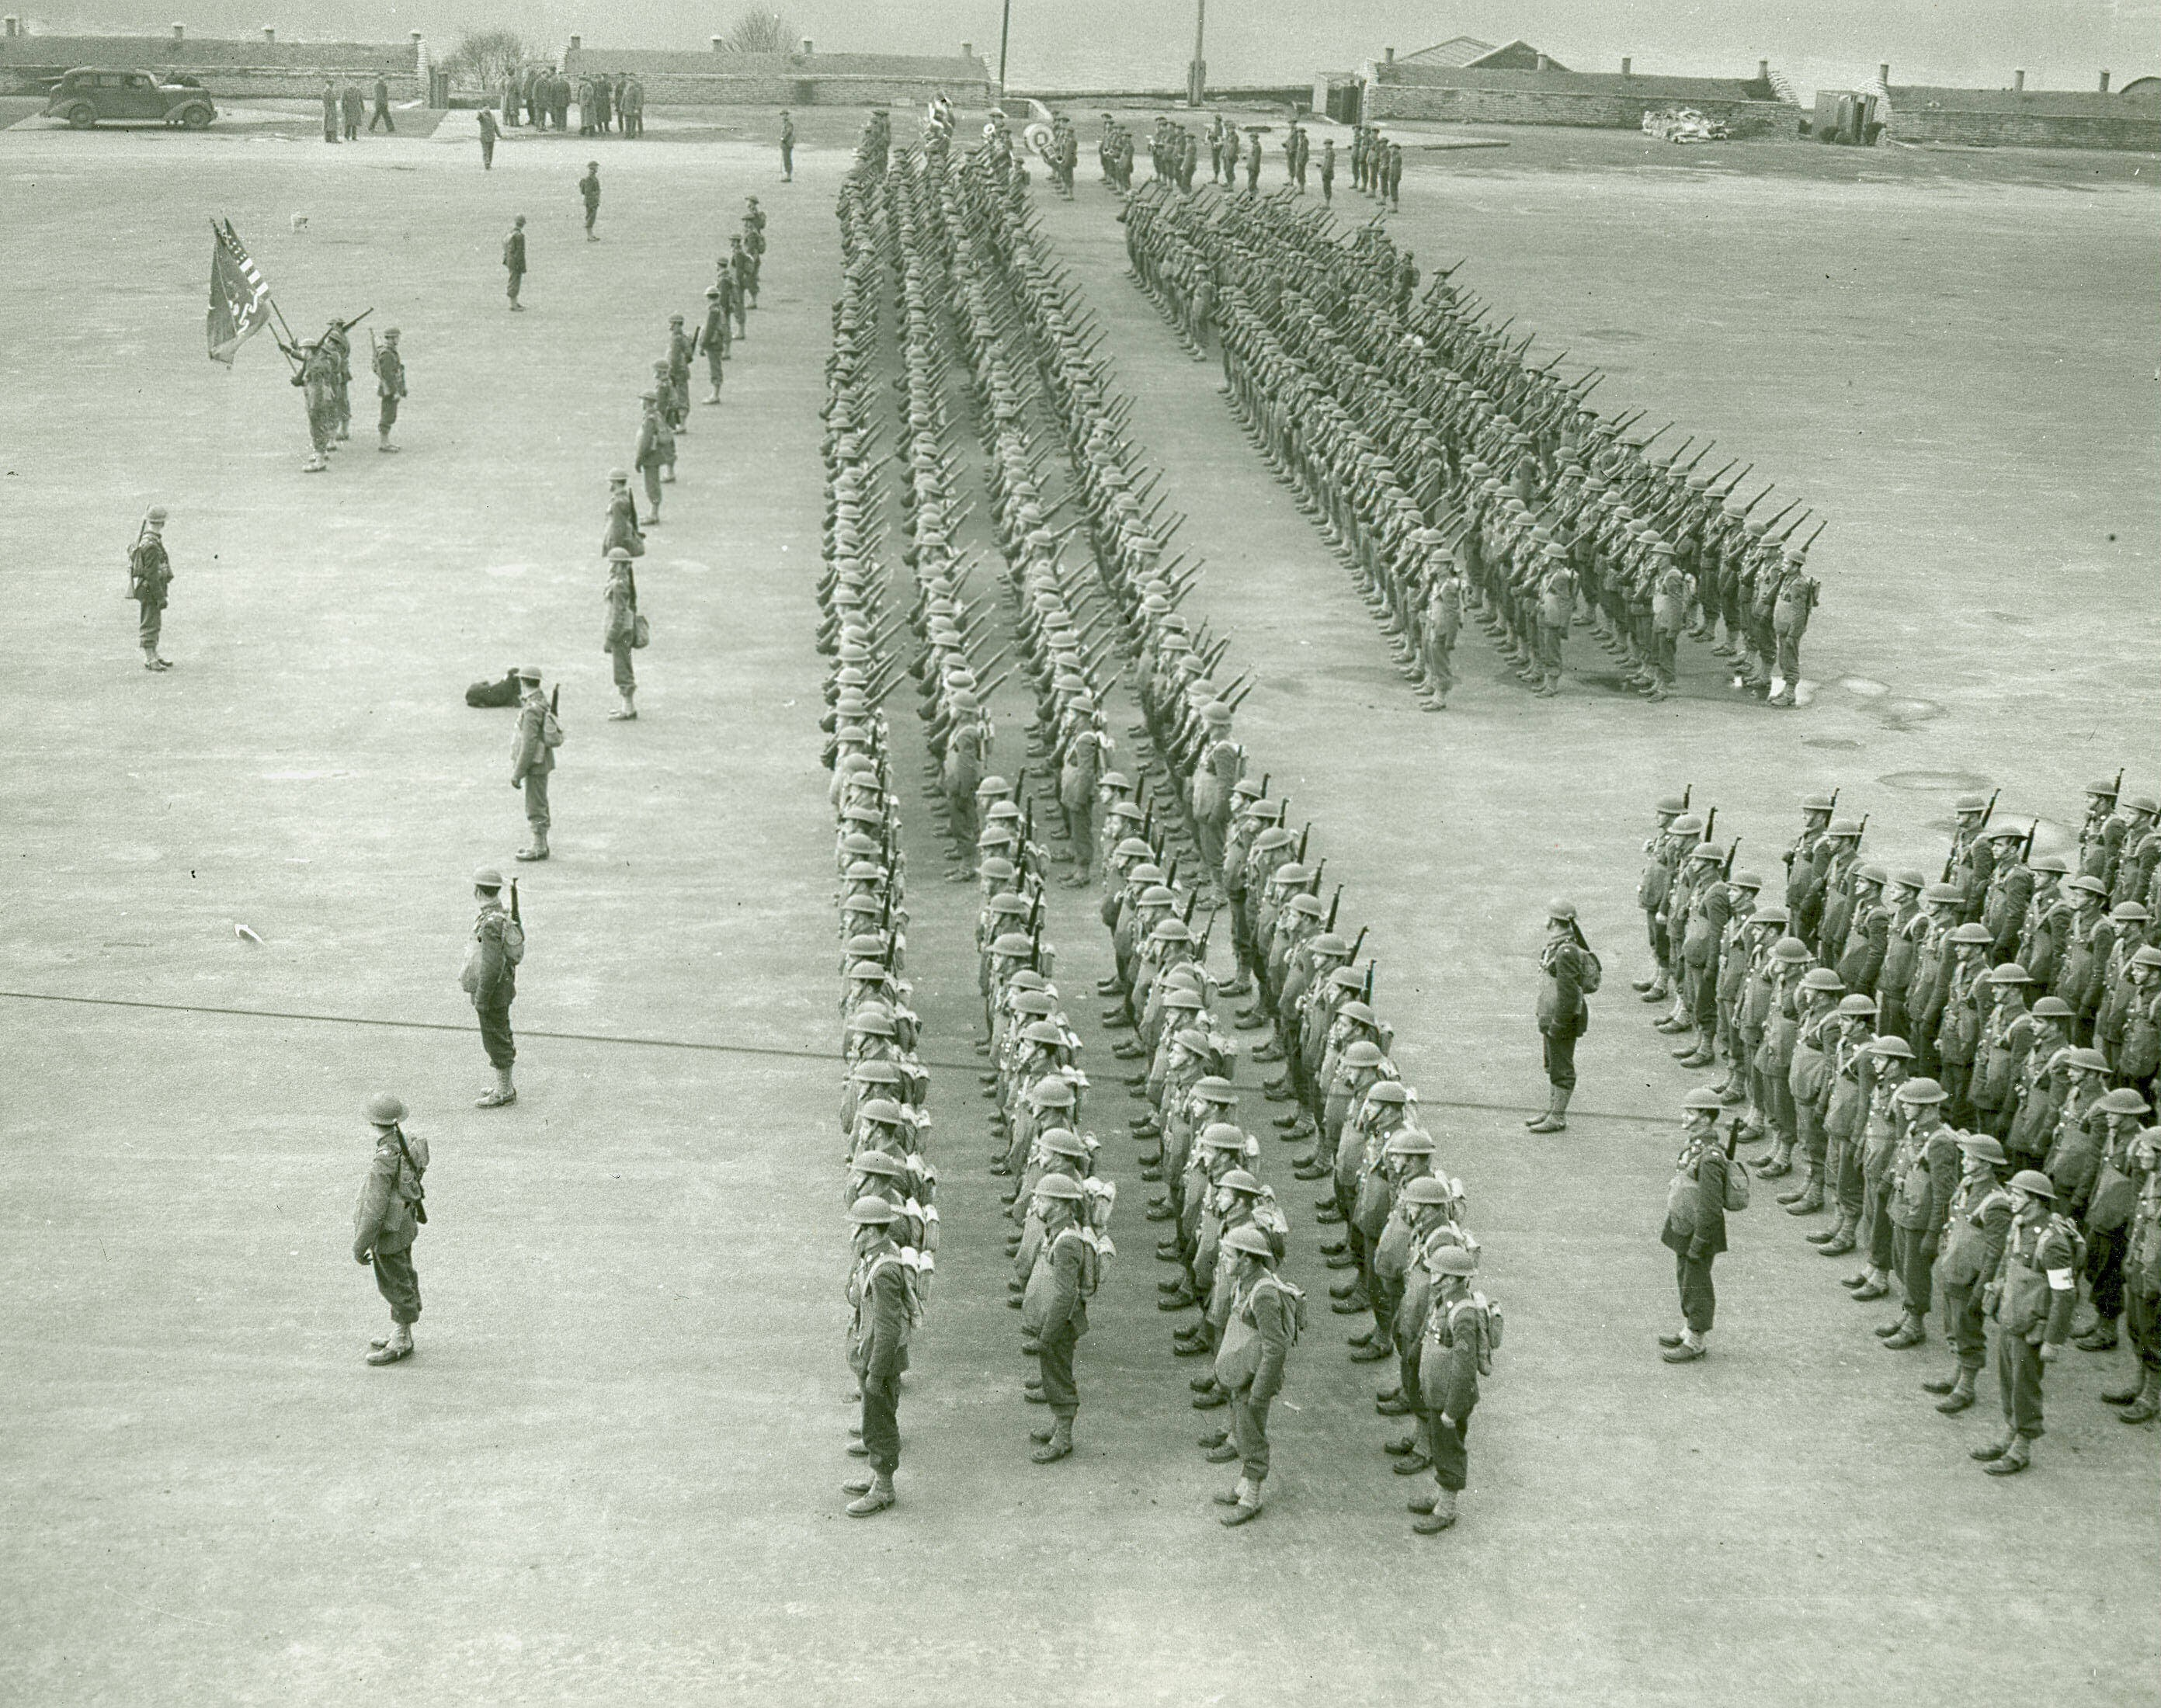 America S Entry Into World War Ii Remembered 73 Years